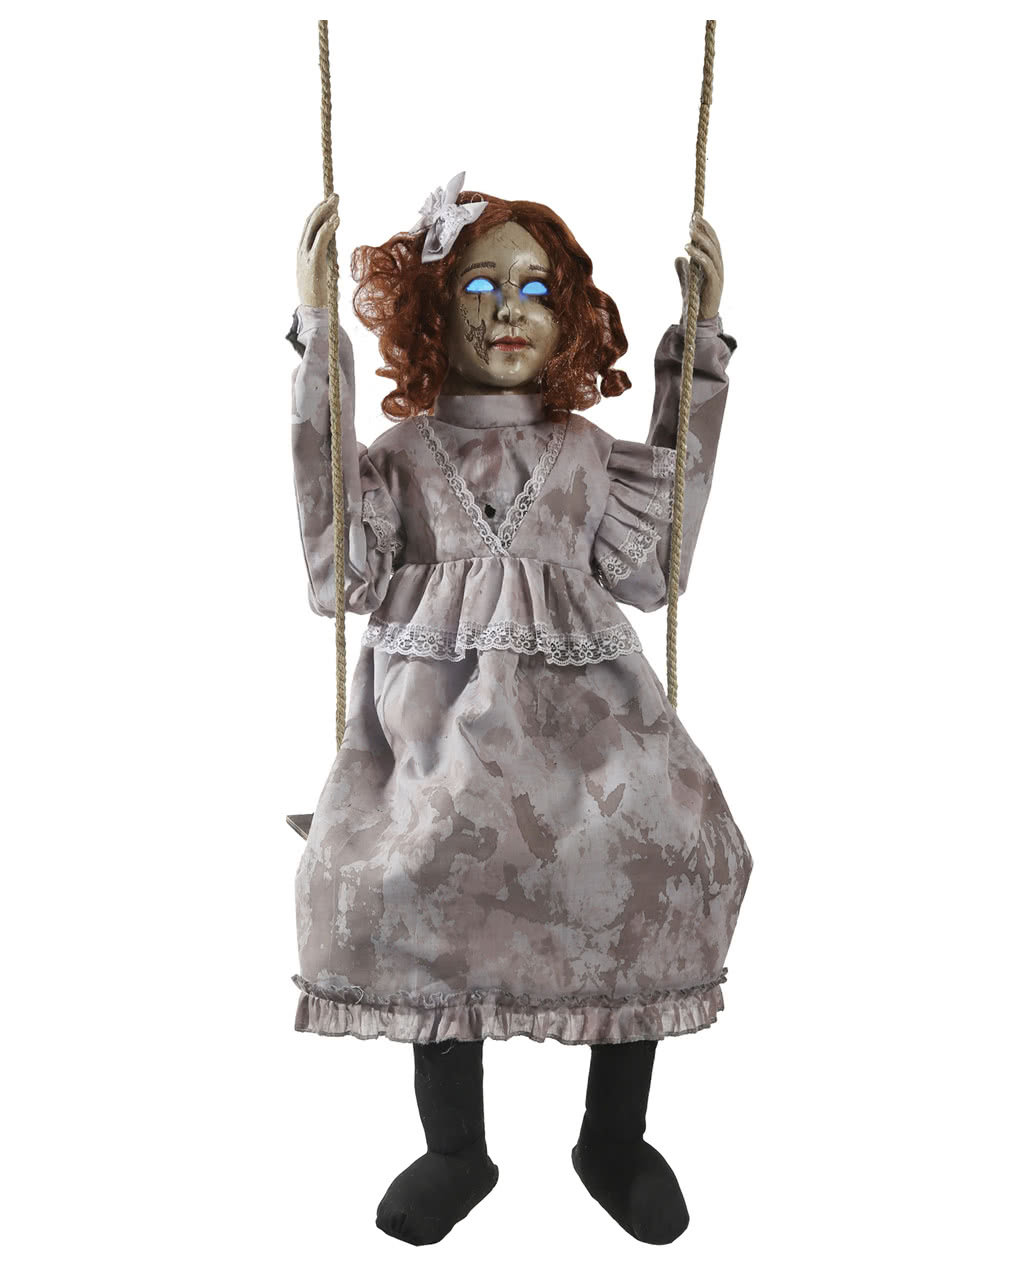 04e4faacf4b96 Rocking Scary Doll Animatronic · https://inst-1.cdn.shockers.de/hs_cdn/